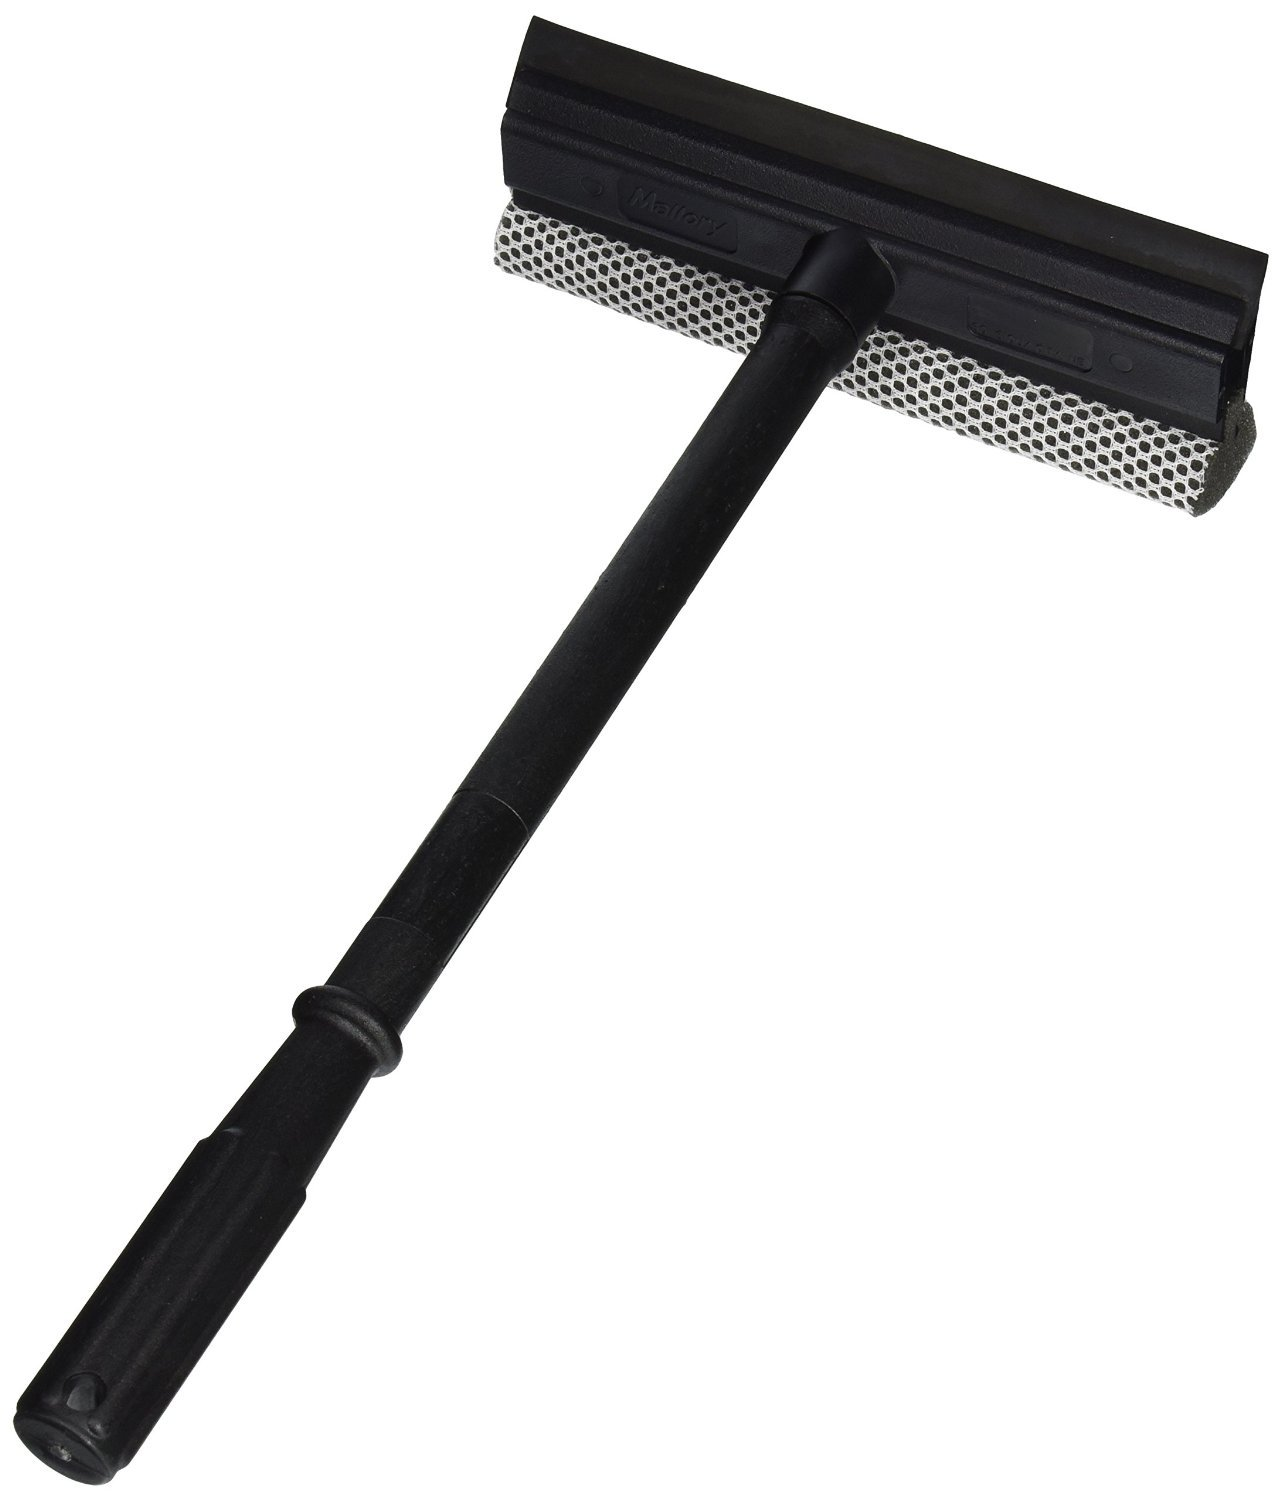 Black Duck Brand Window and Windshield Cleaning Sponge and Rubber Squeegee (1) 12106